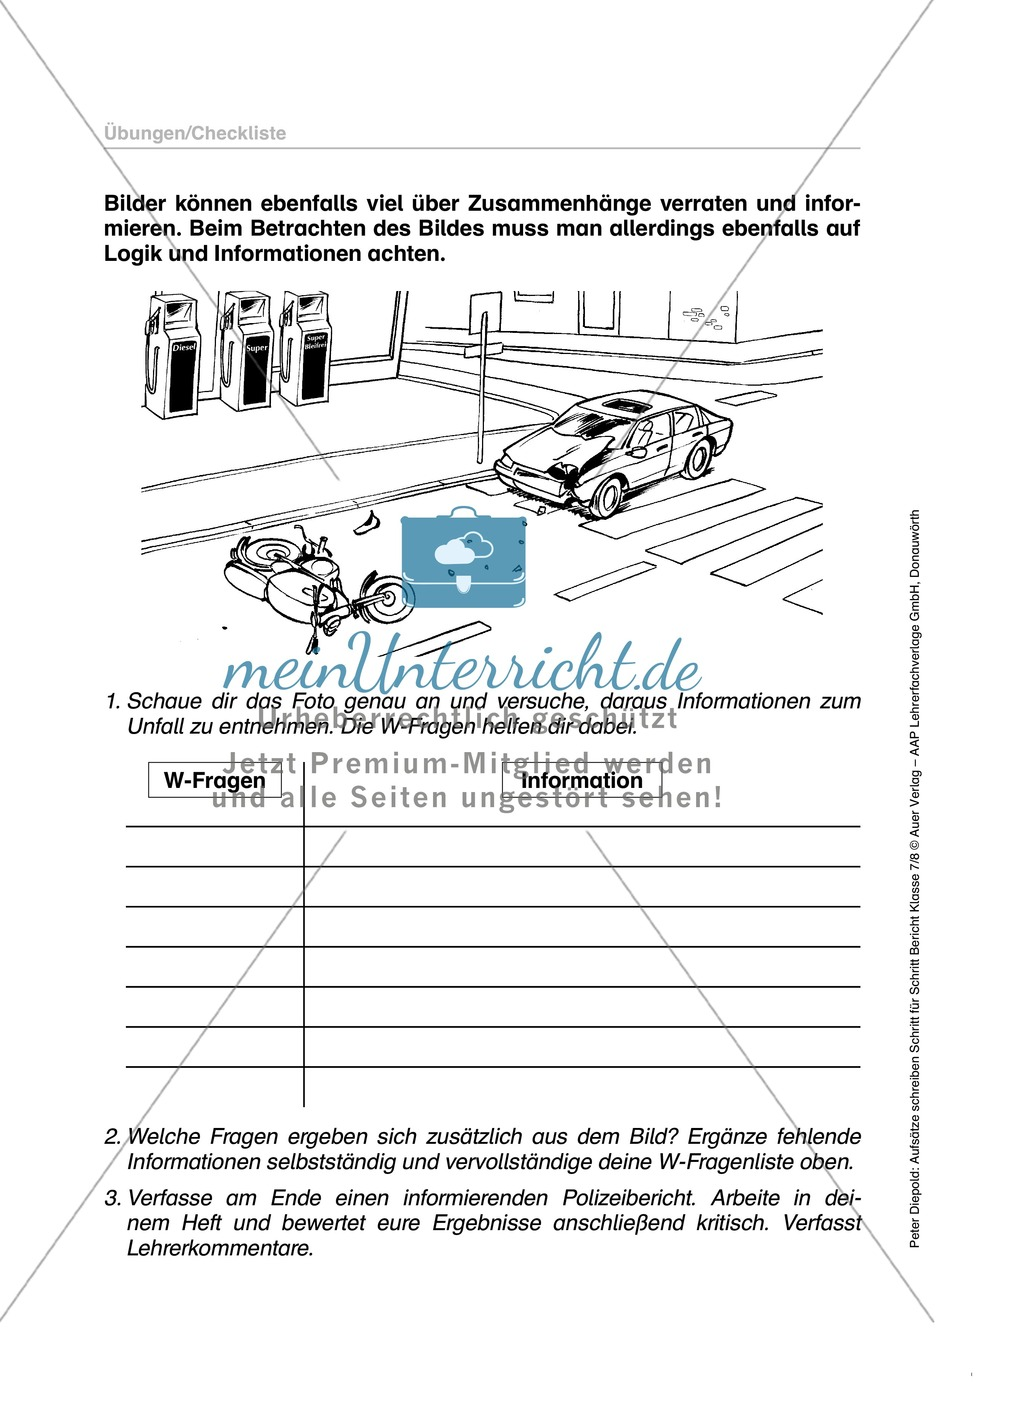 Arbeitsblatter deutsch 5 klasse 3076414 - memorables.info